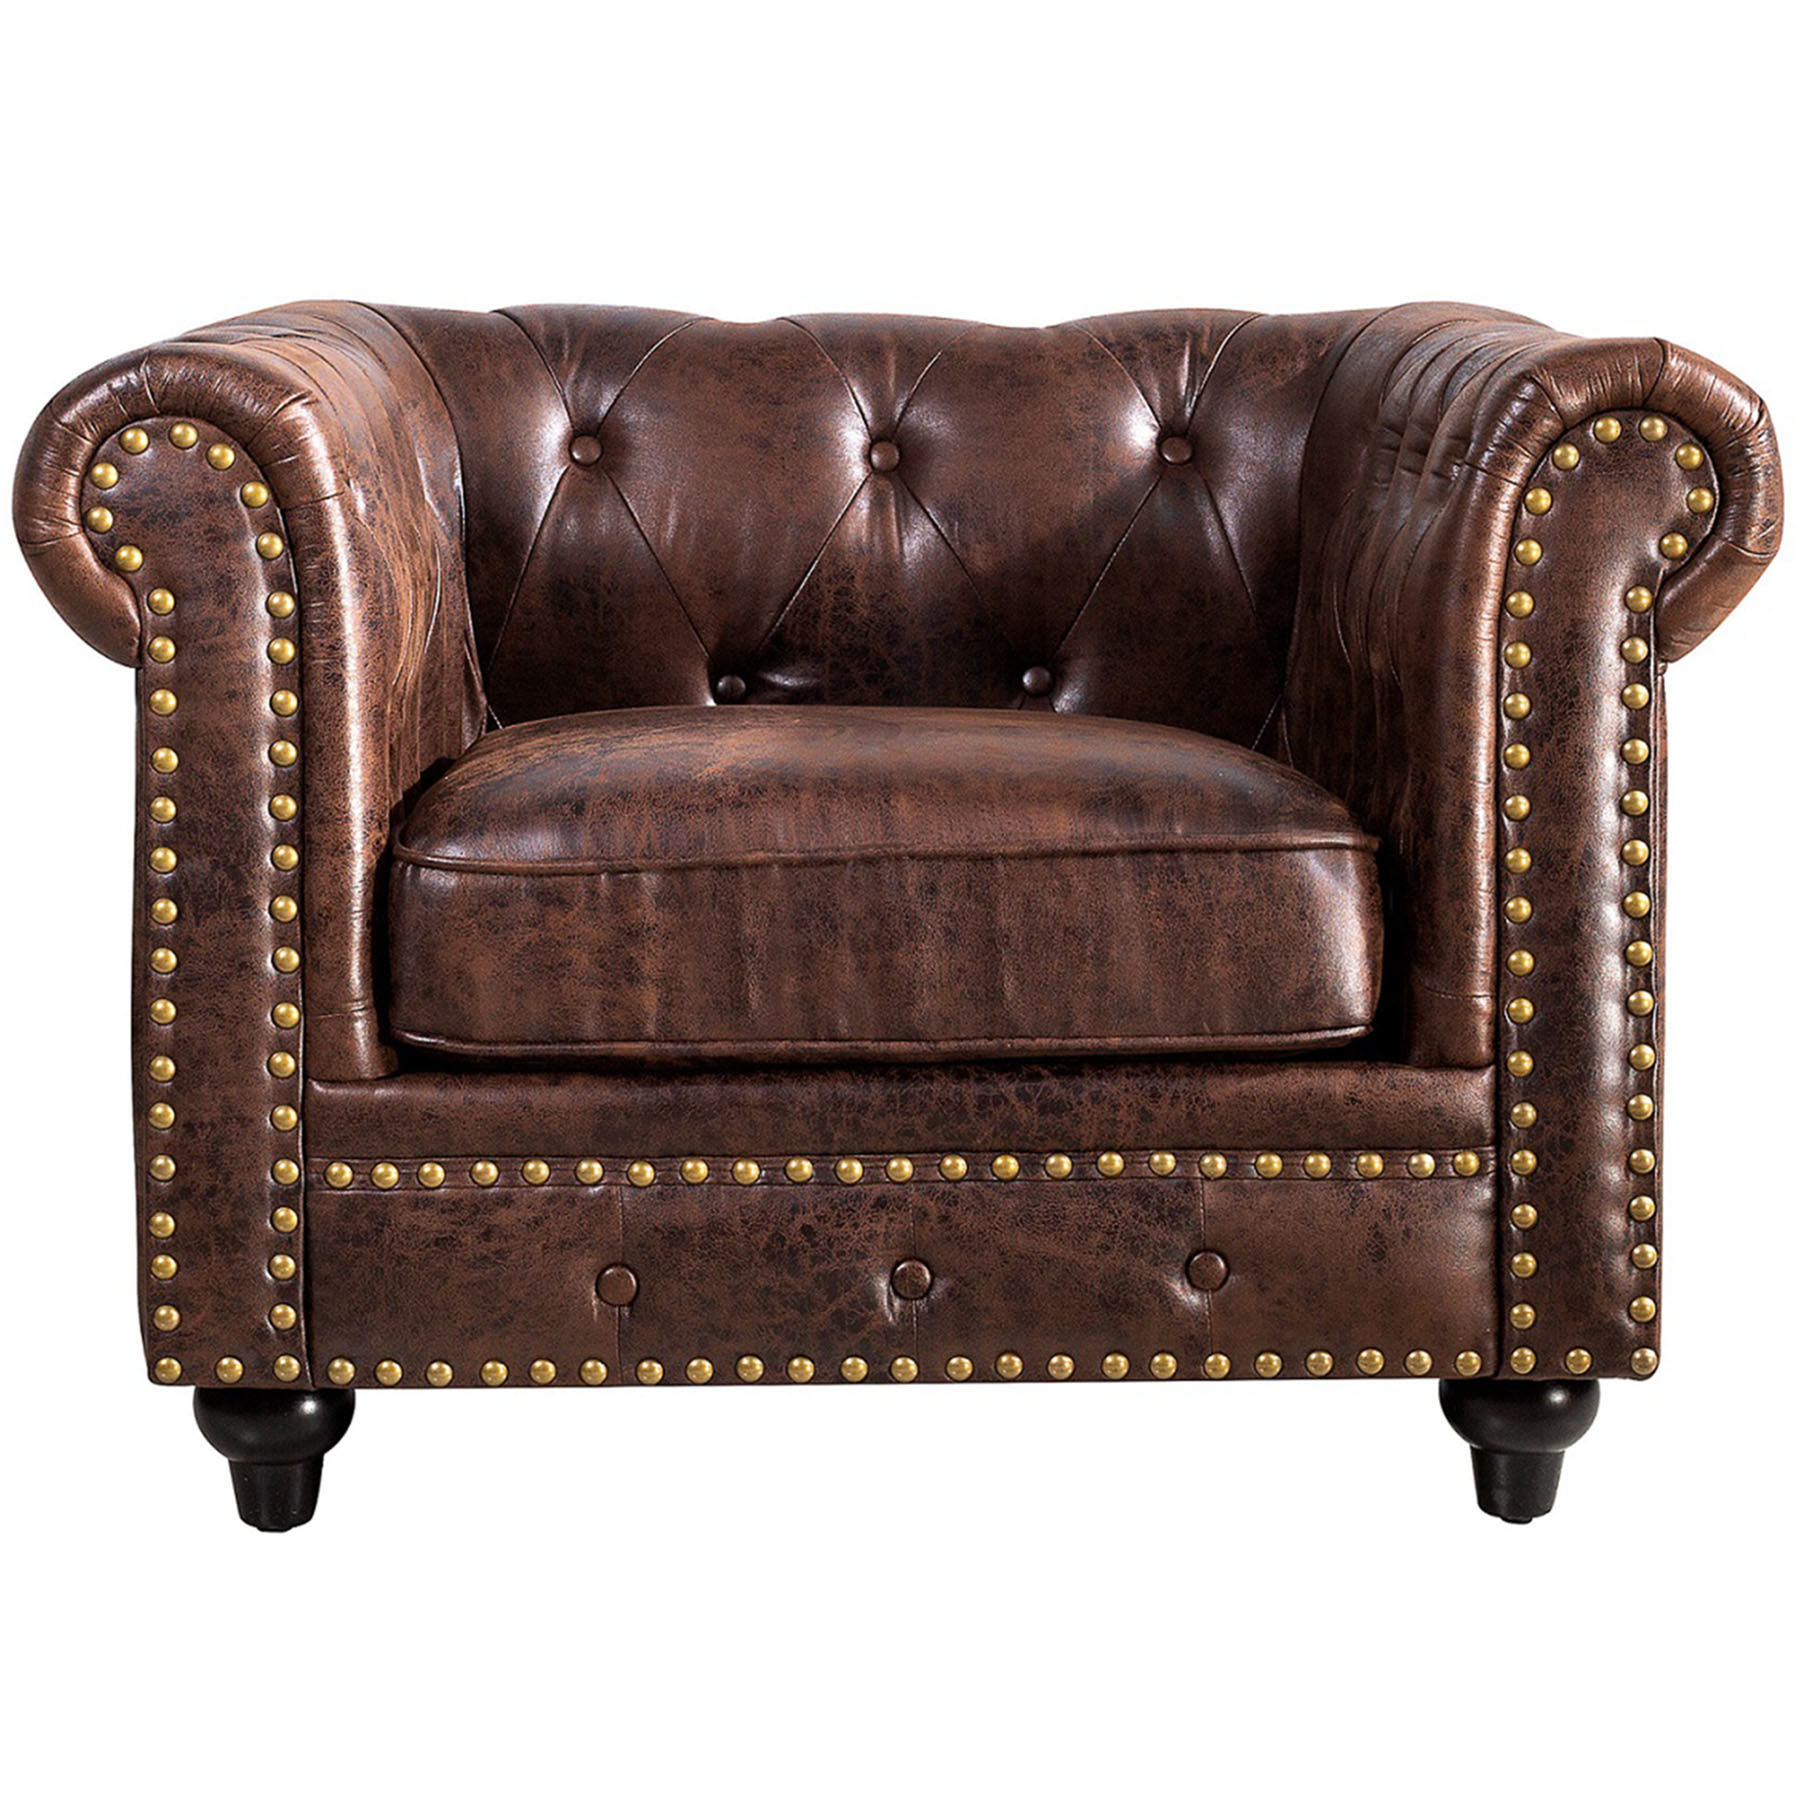 Chesterfield Tufted Chair, Brown · Chesterfield Tufted Chair, Brown